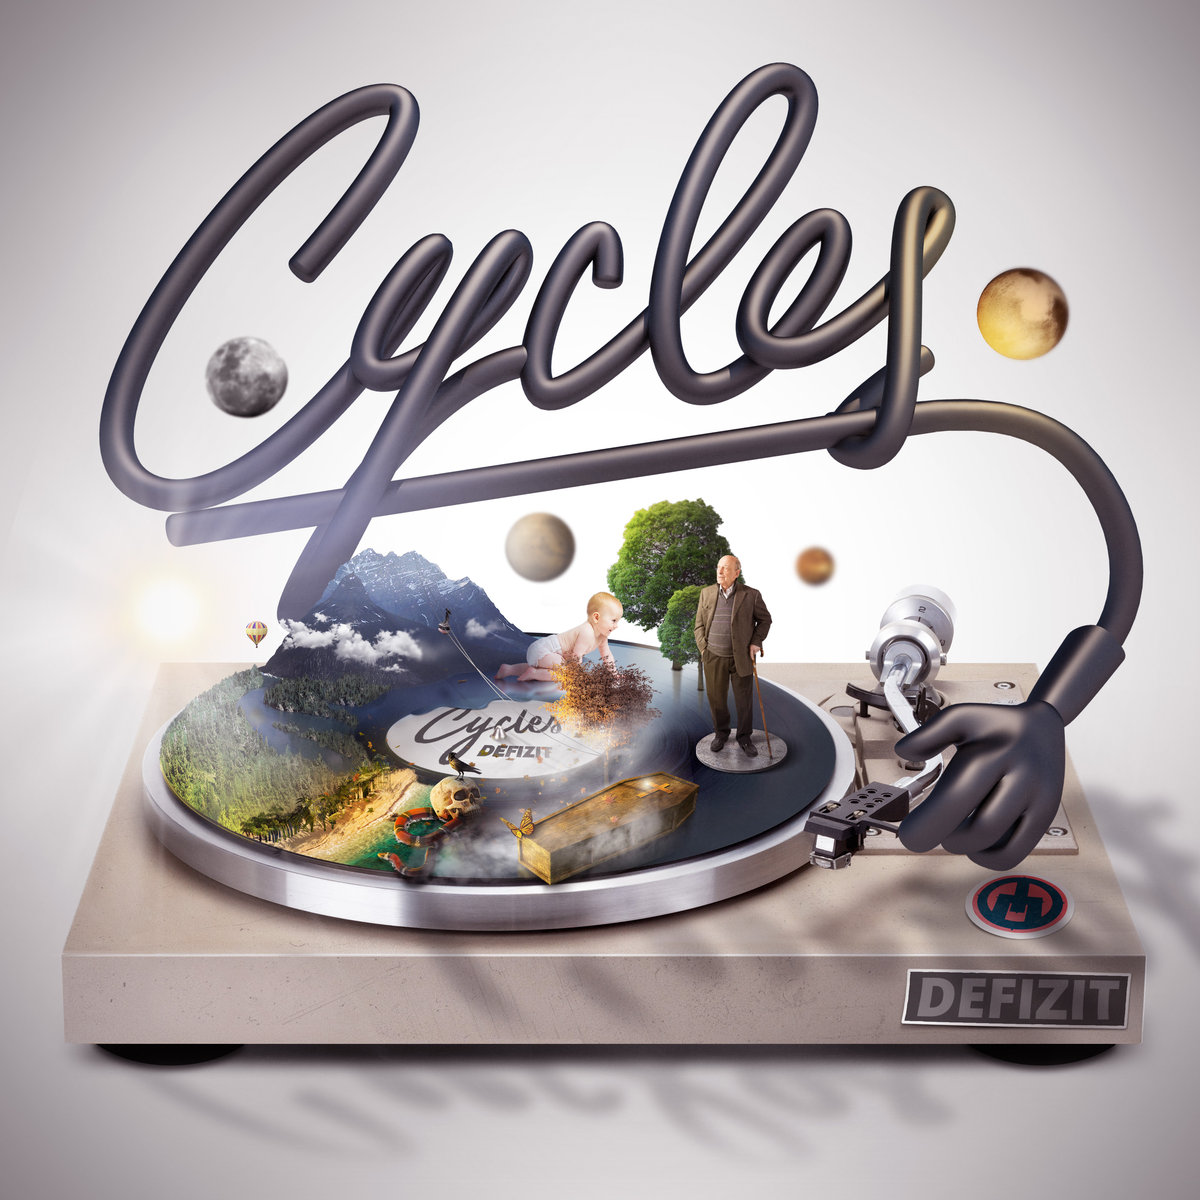 Beat_tape_defizit_presenta__cycles_